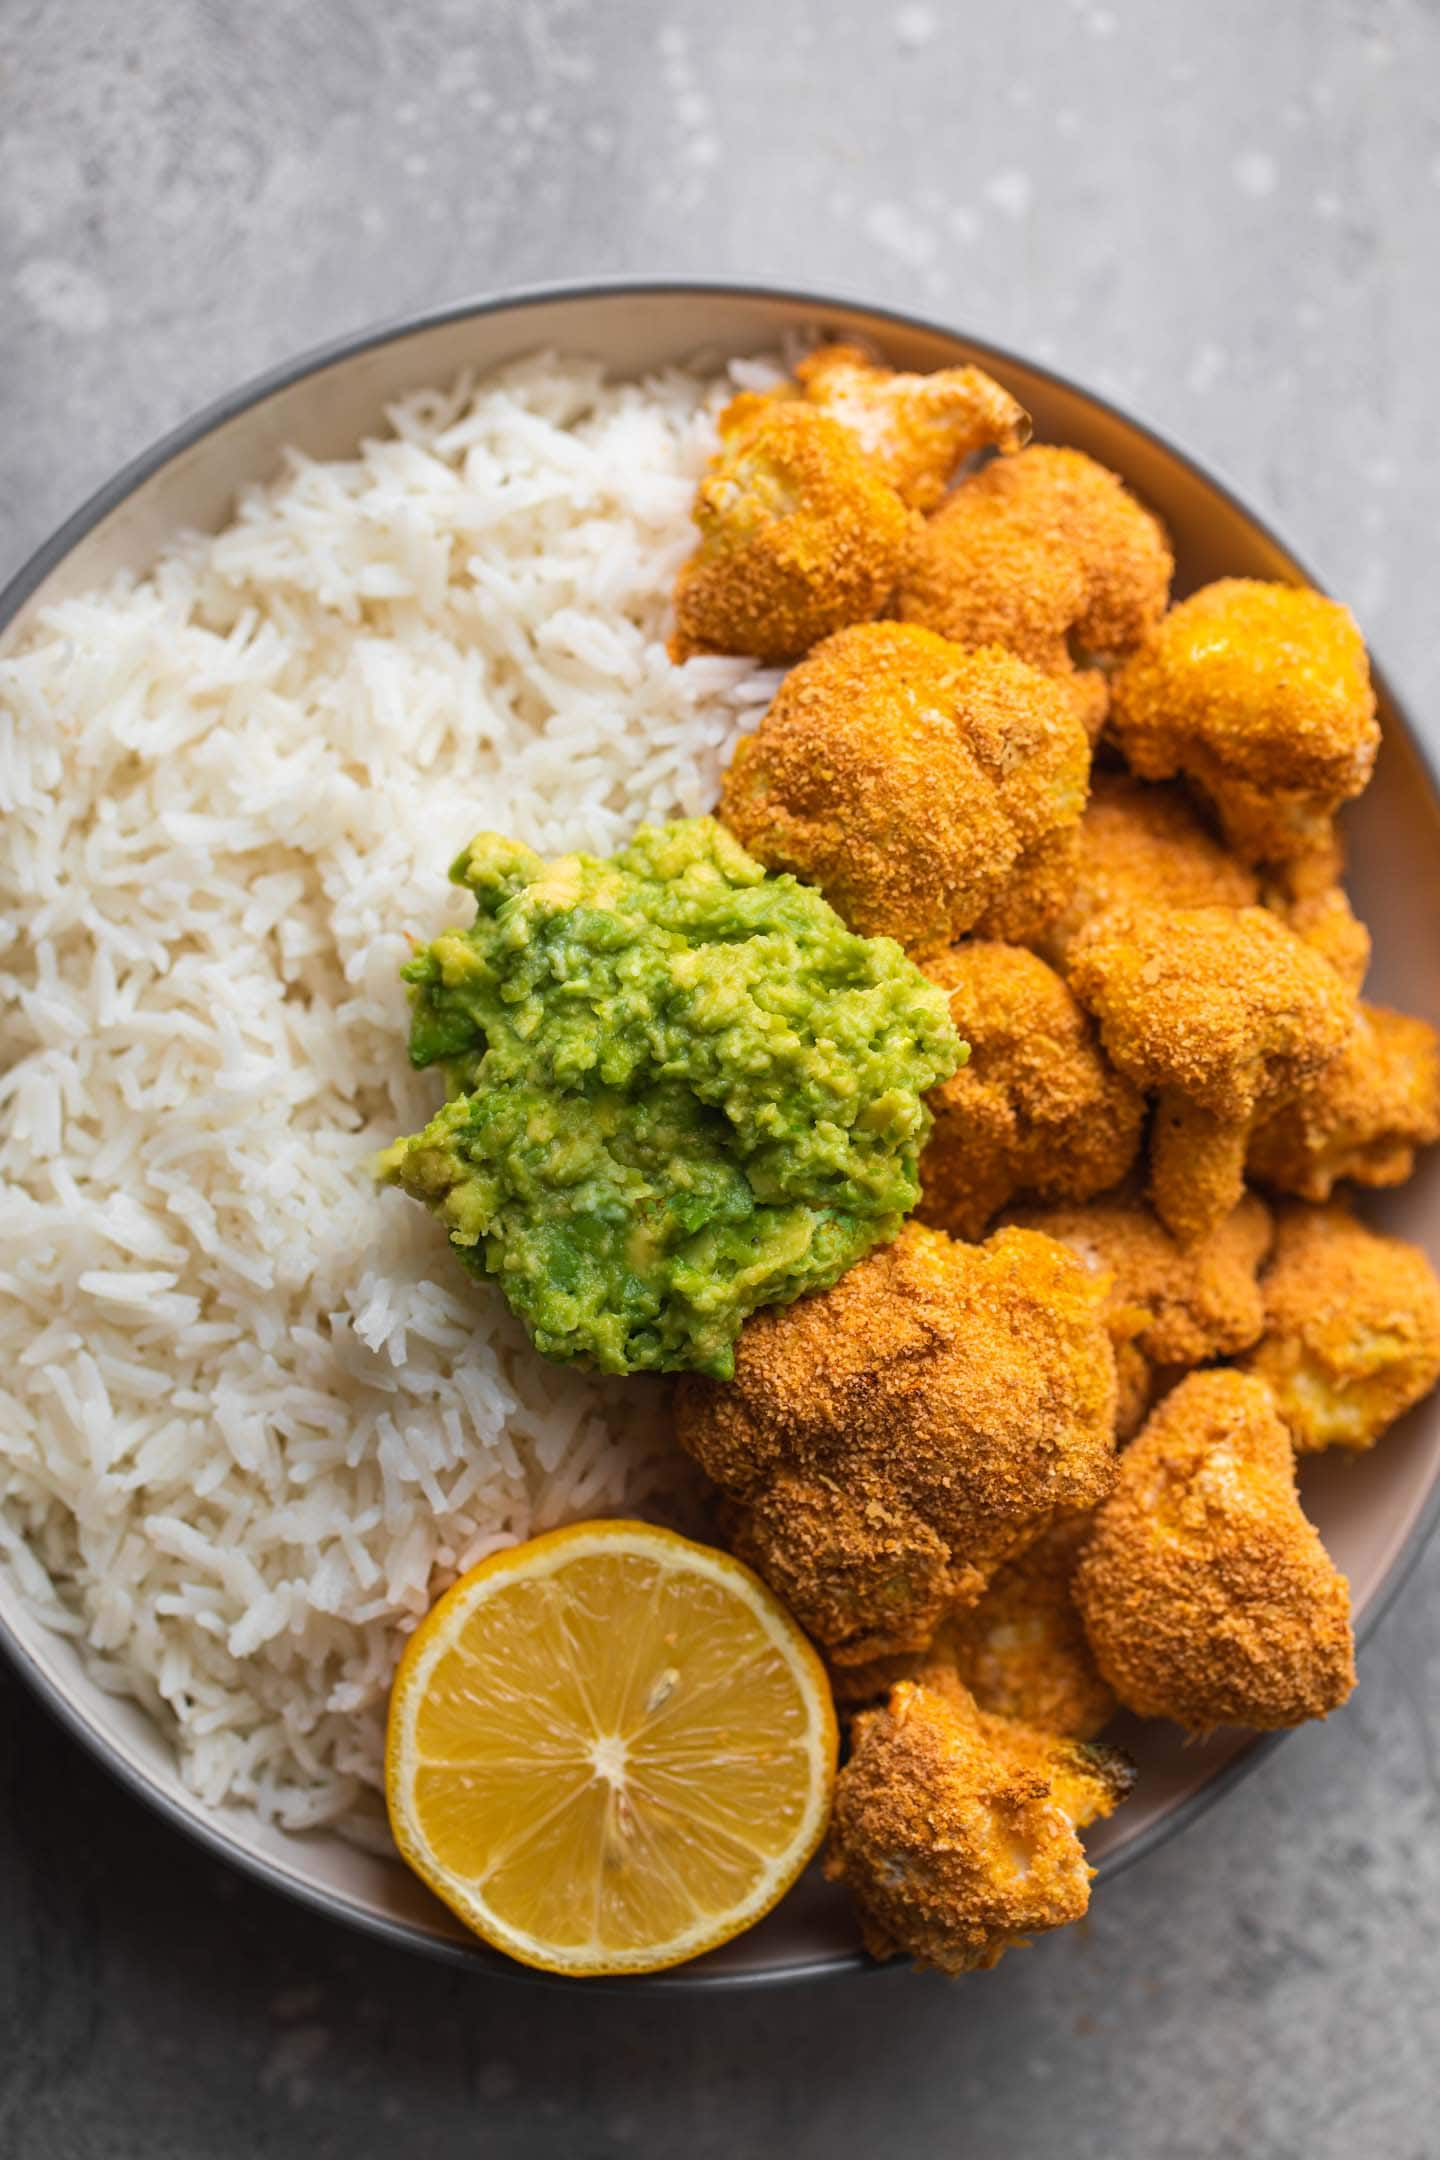 Bowl with breaded cauliflower, rice and avocado